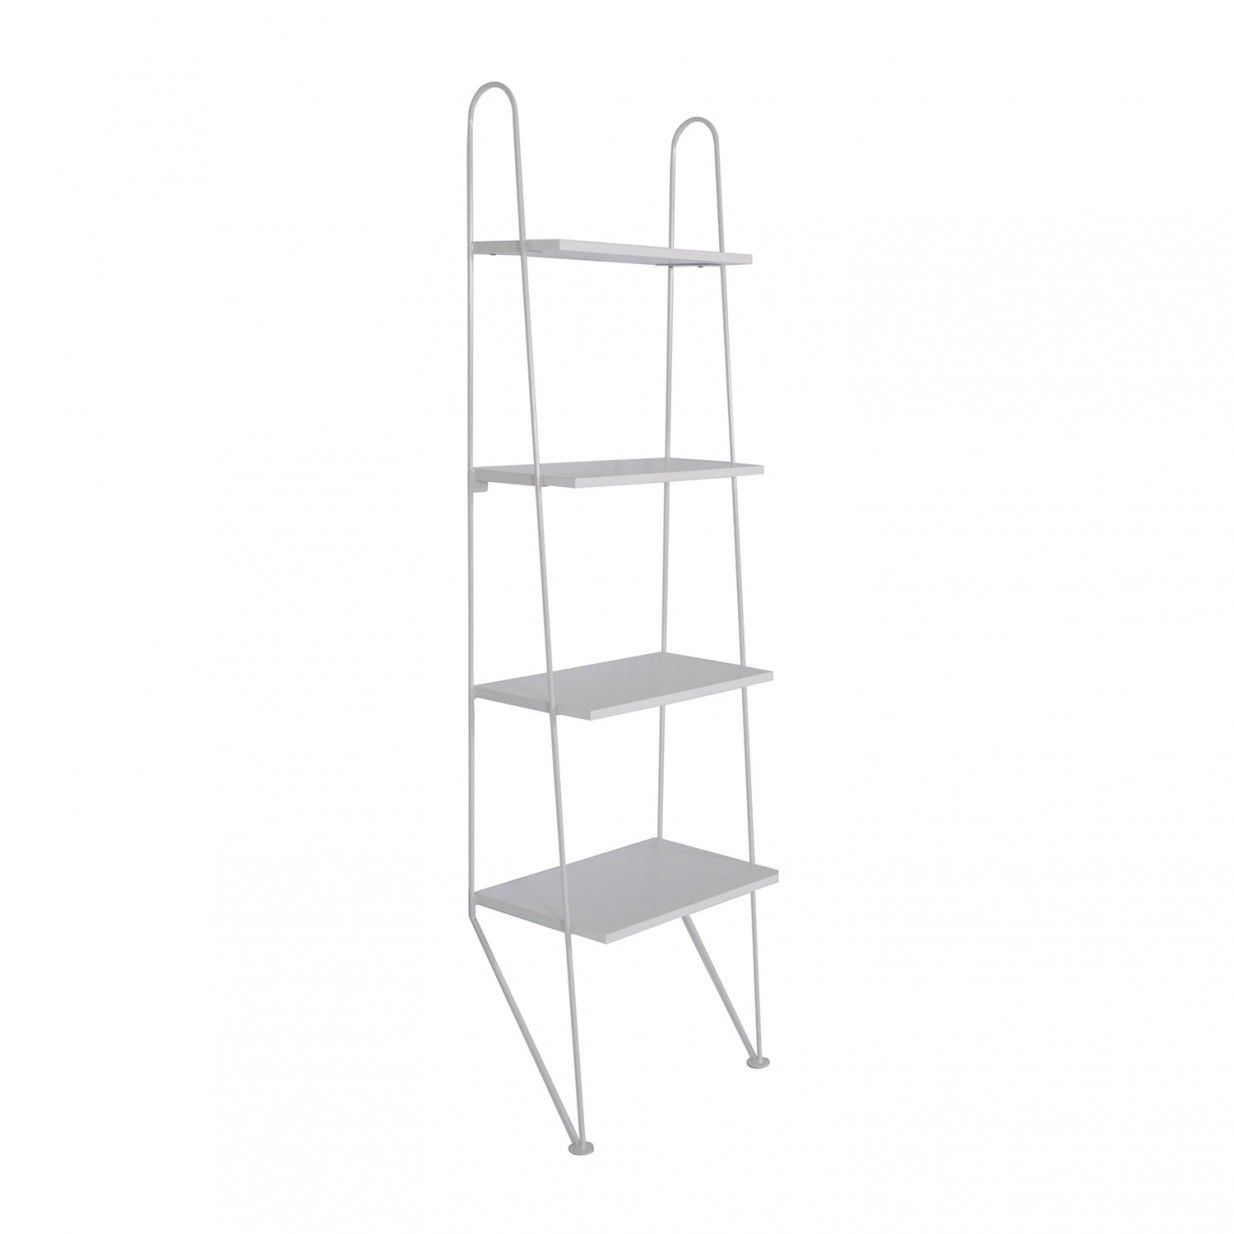 String Regal Rabatt Ester Standregal Weiß Rge Sbcr Hub Step Shelves Shelves